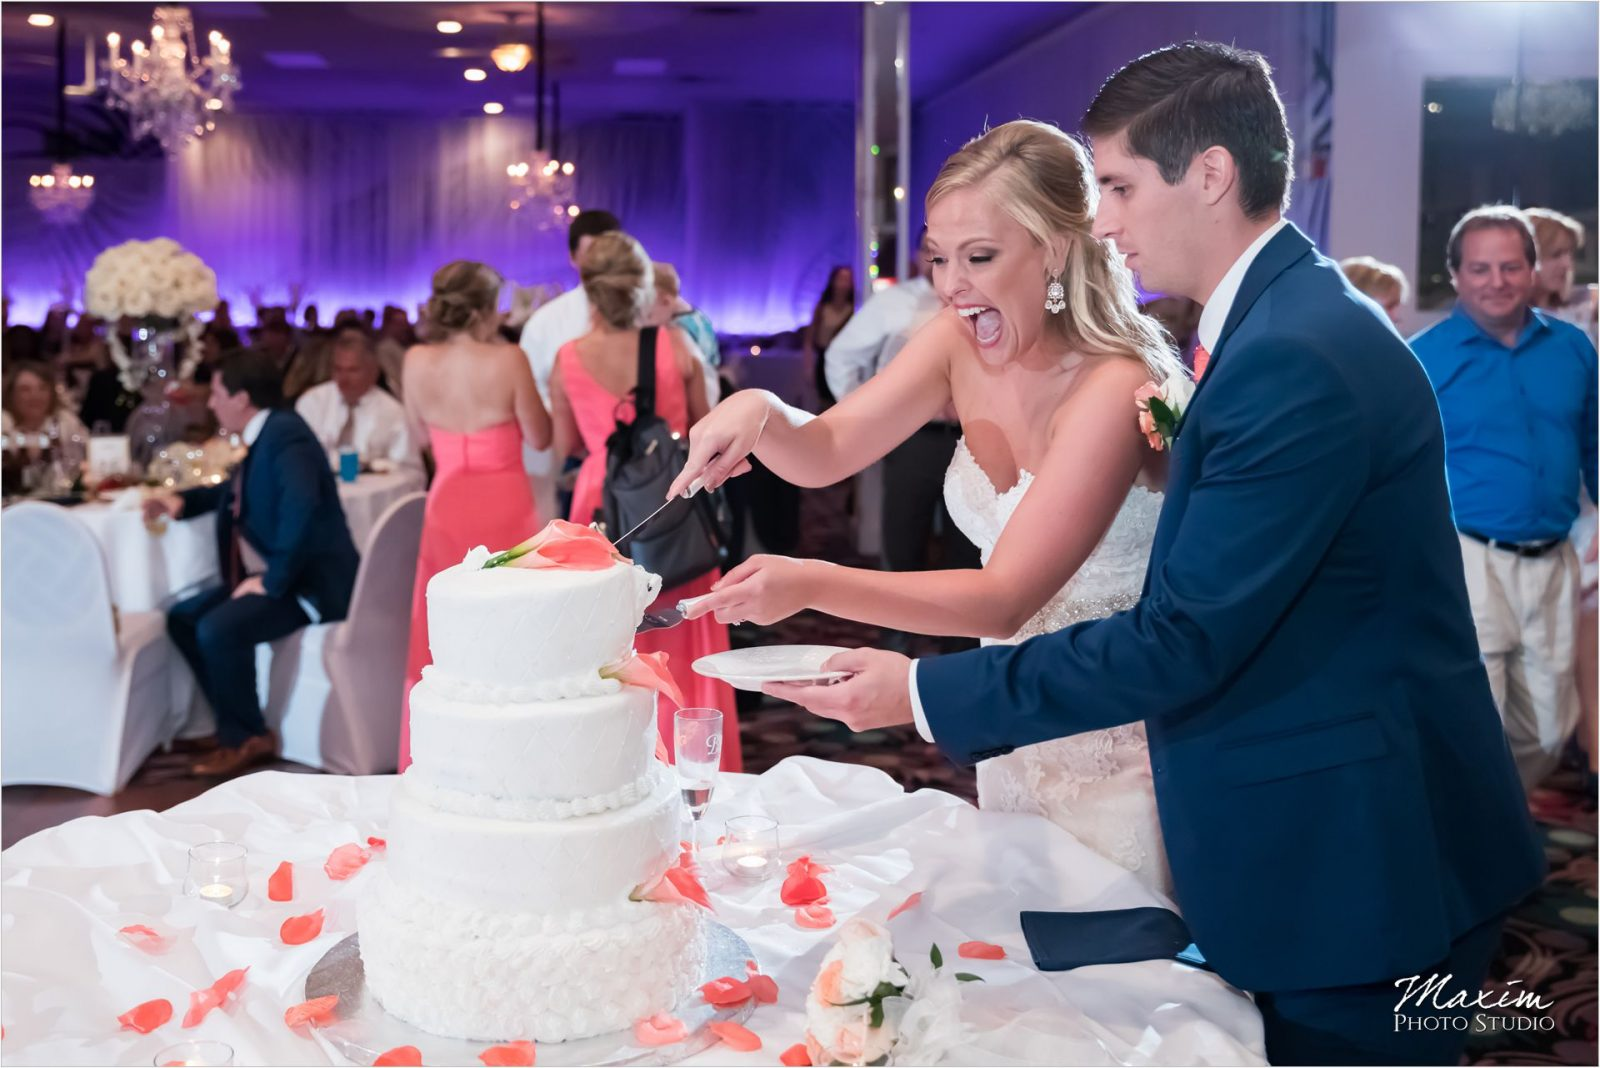 Newport Syndicate Covington Kentucky Wedding Reception Cake